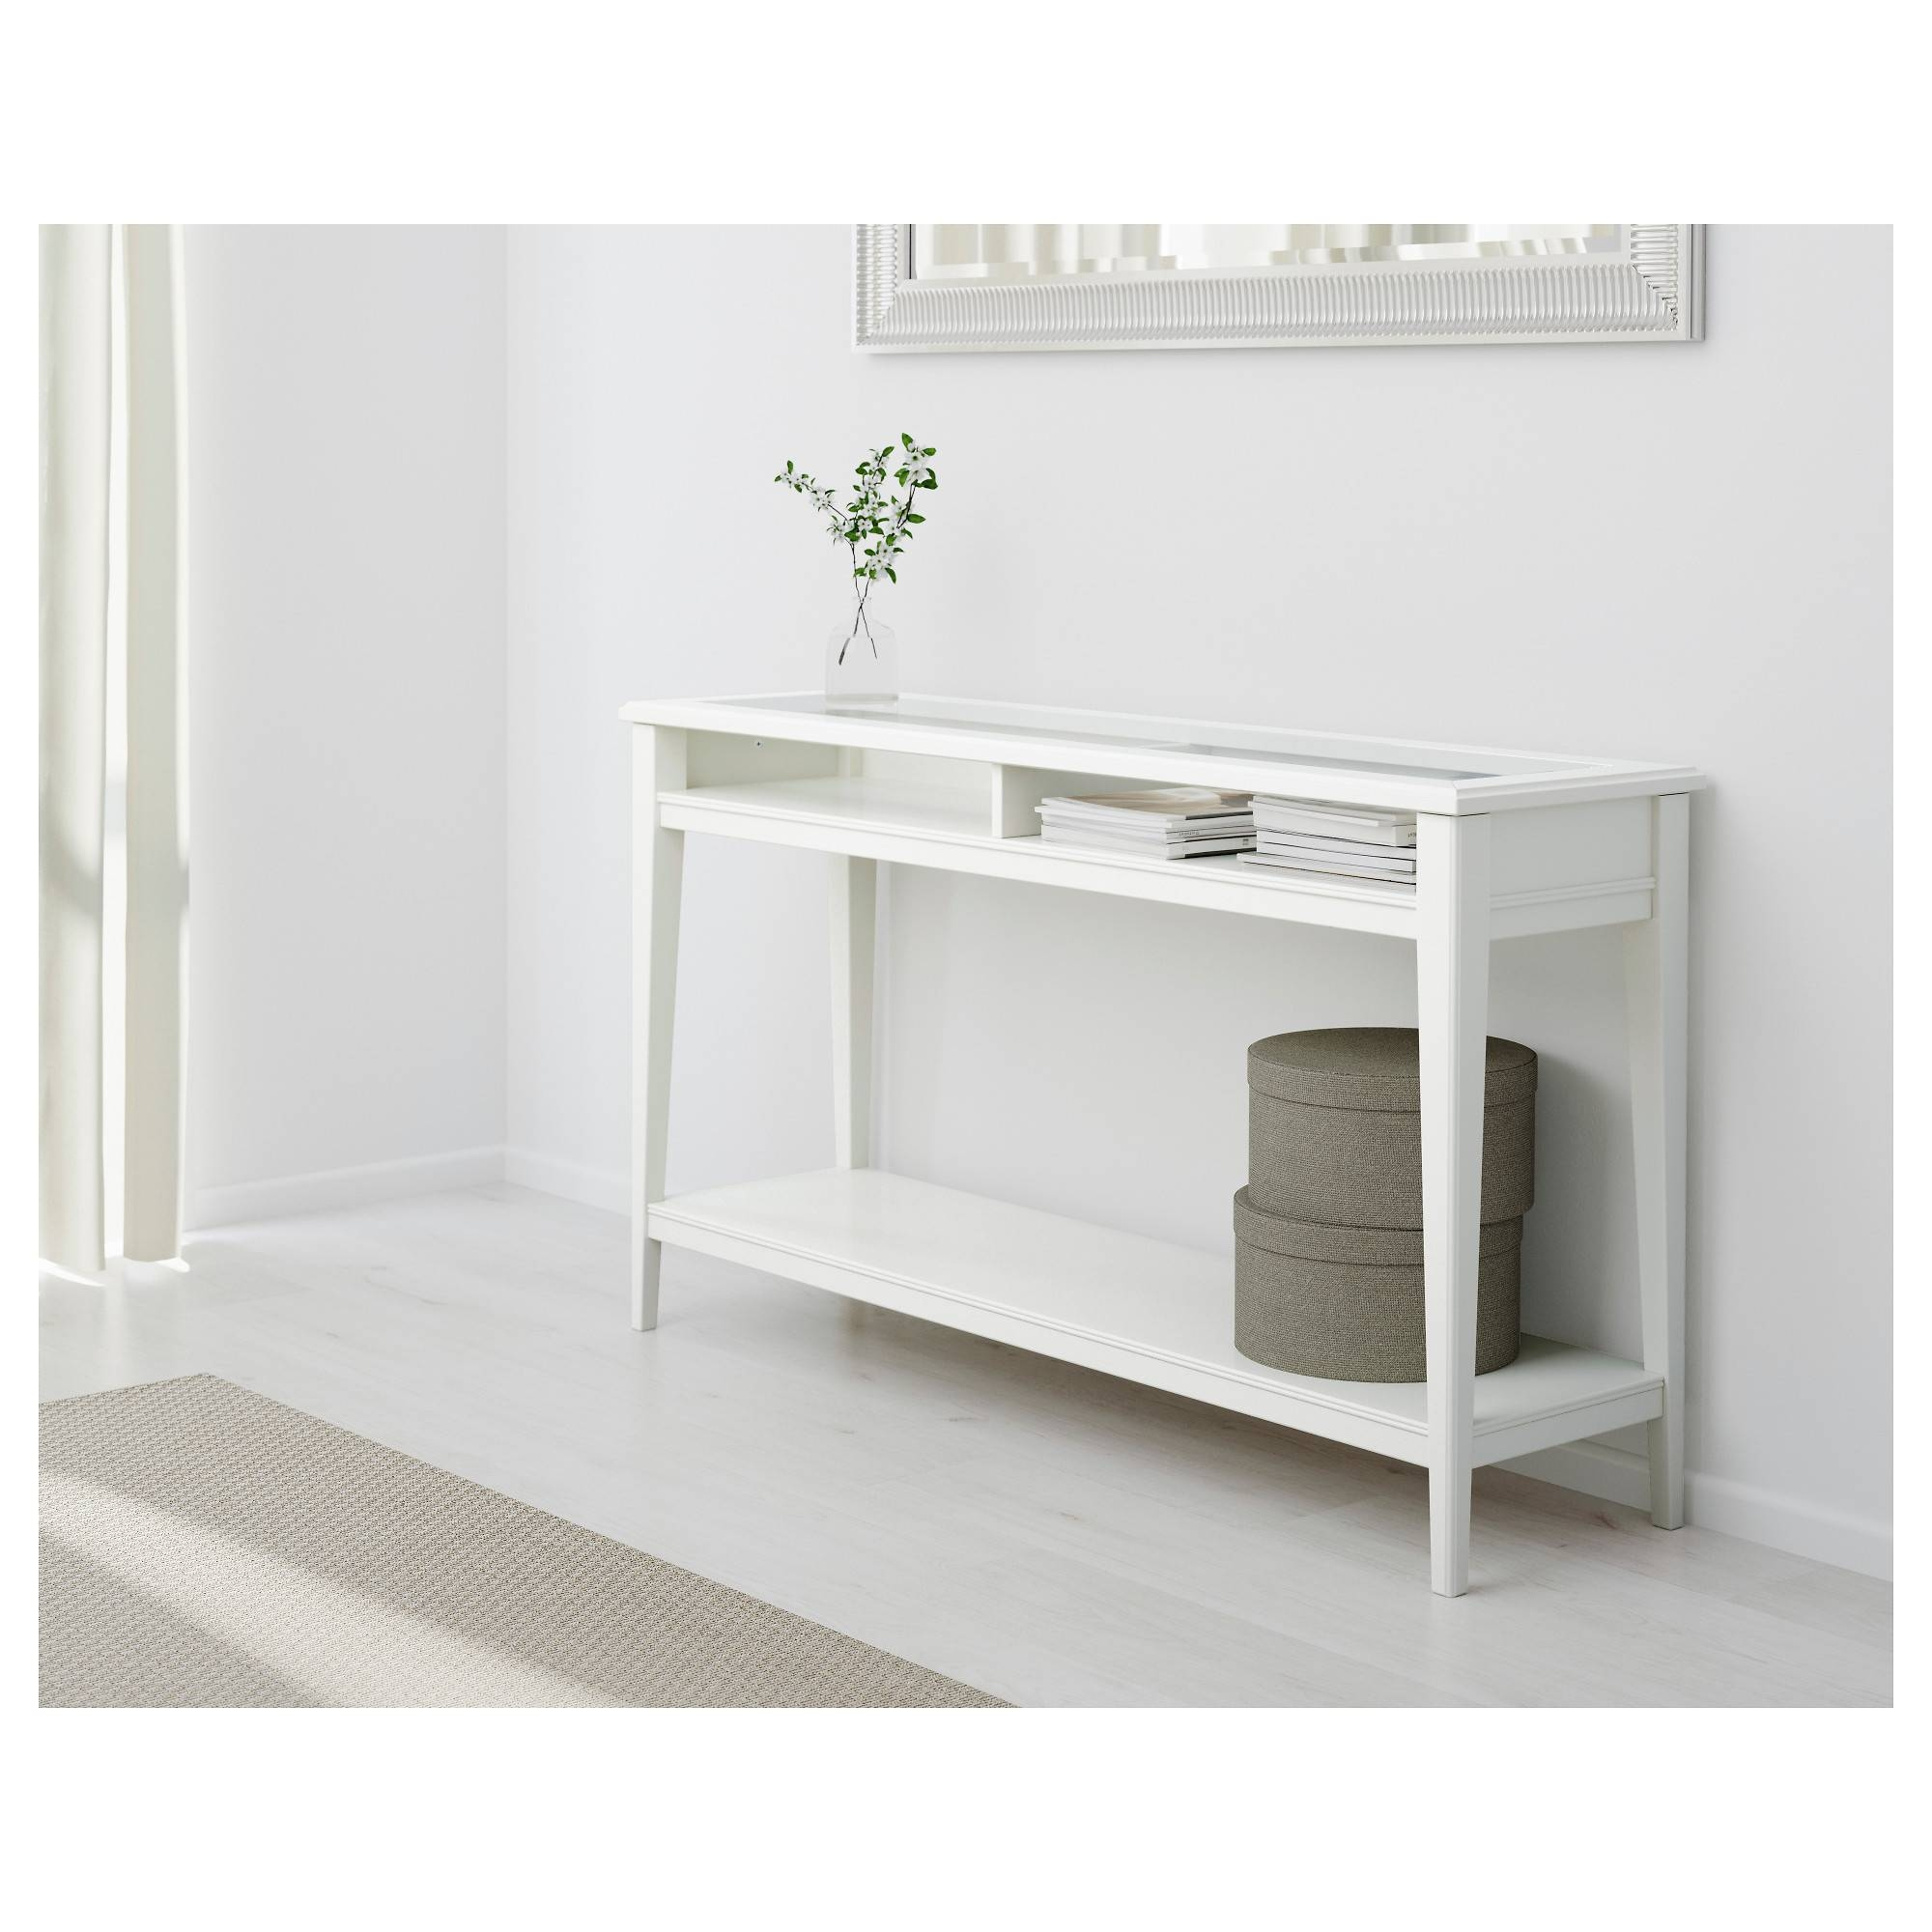 Liatorp Console Table White/glass 133X37 Cm - Ikea in Liatorp Sideboards (Image 7 of 15)